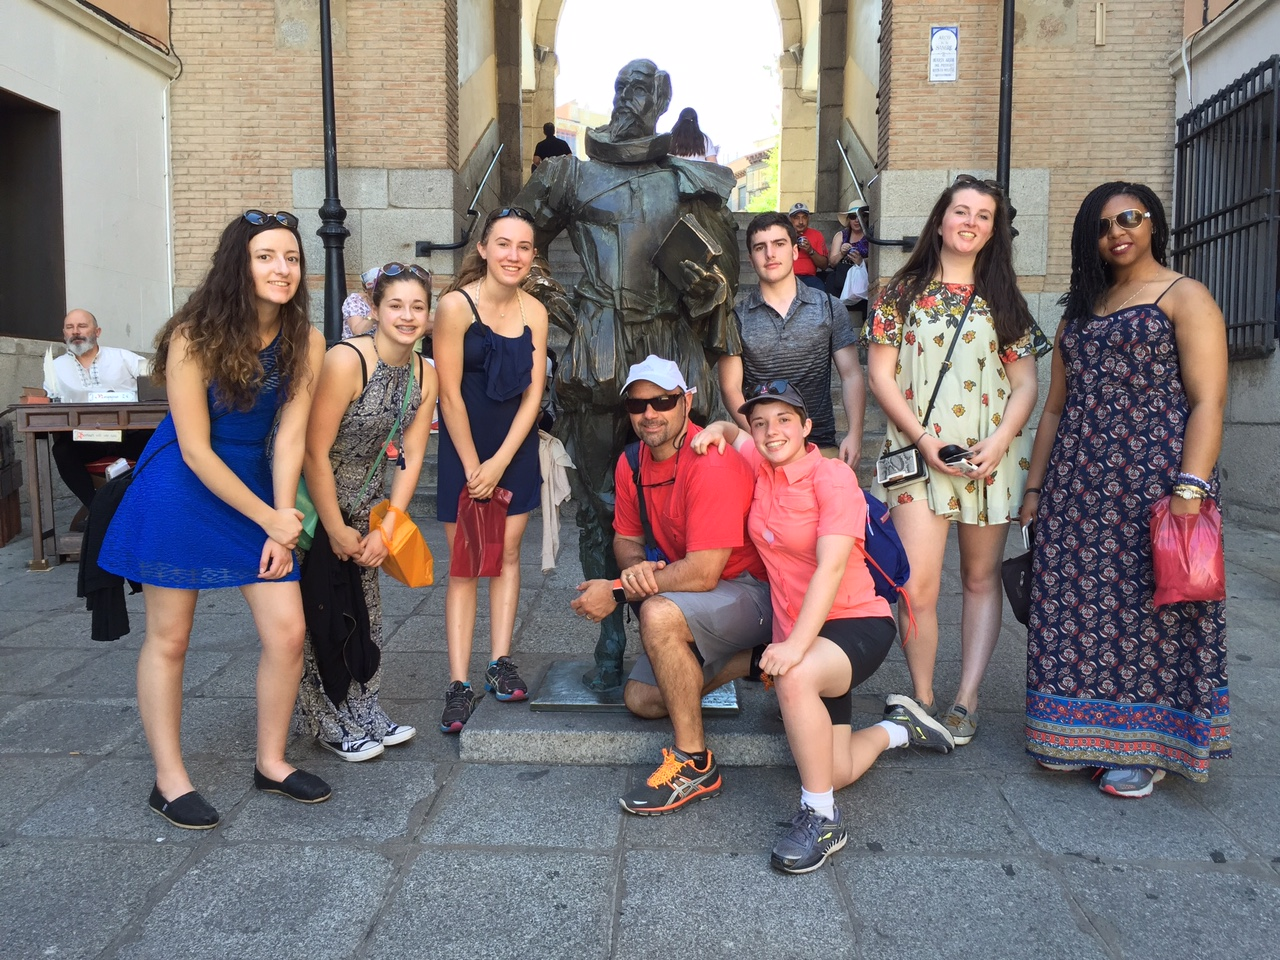 Students around a statue in Spain